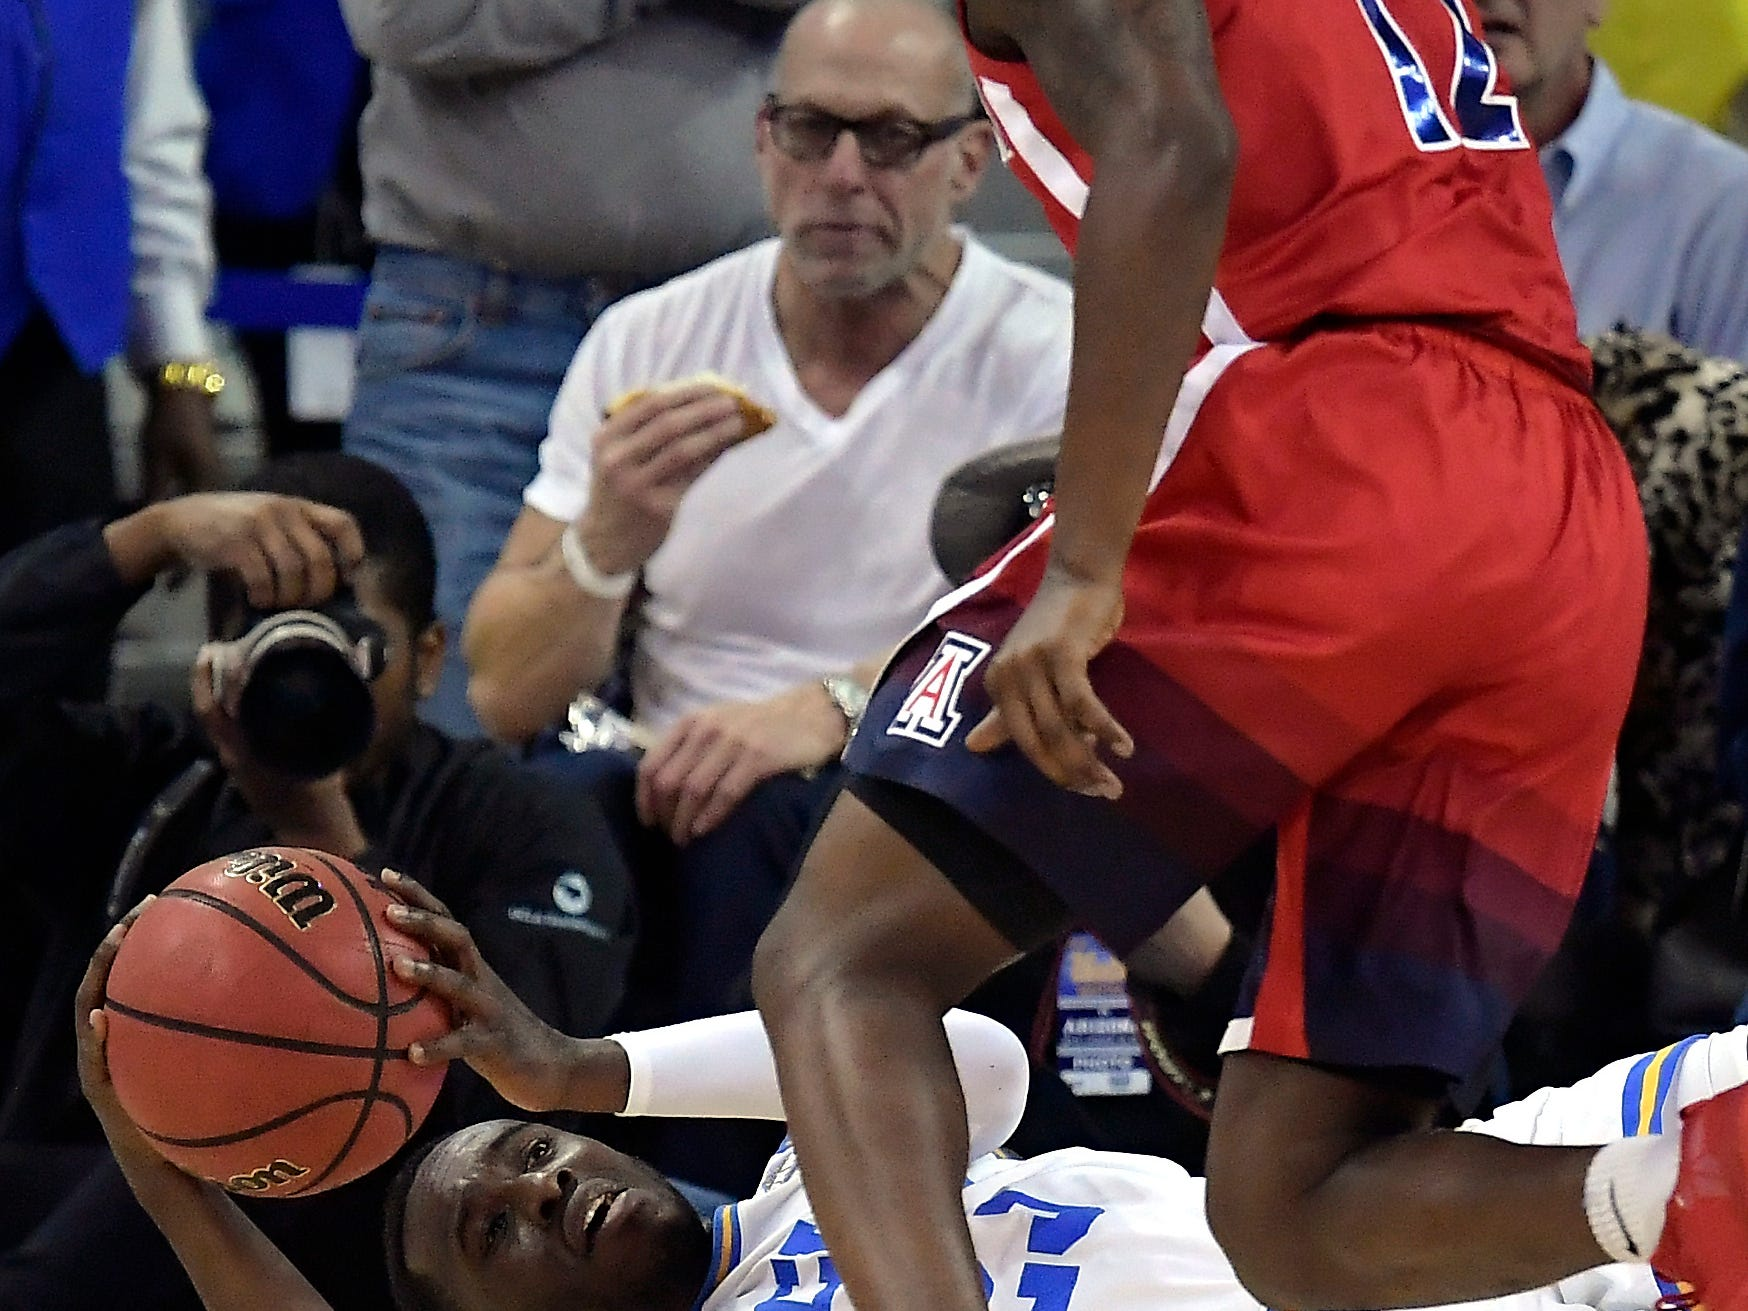 UCLA guard Prince Ali tries to pass the ball after falling while under pressure from Arizona guard Justin Coleman during the first half of an NCAA college basketball game Saturday, Jan. 26, 2019, in Los Angeles.